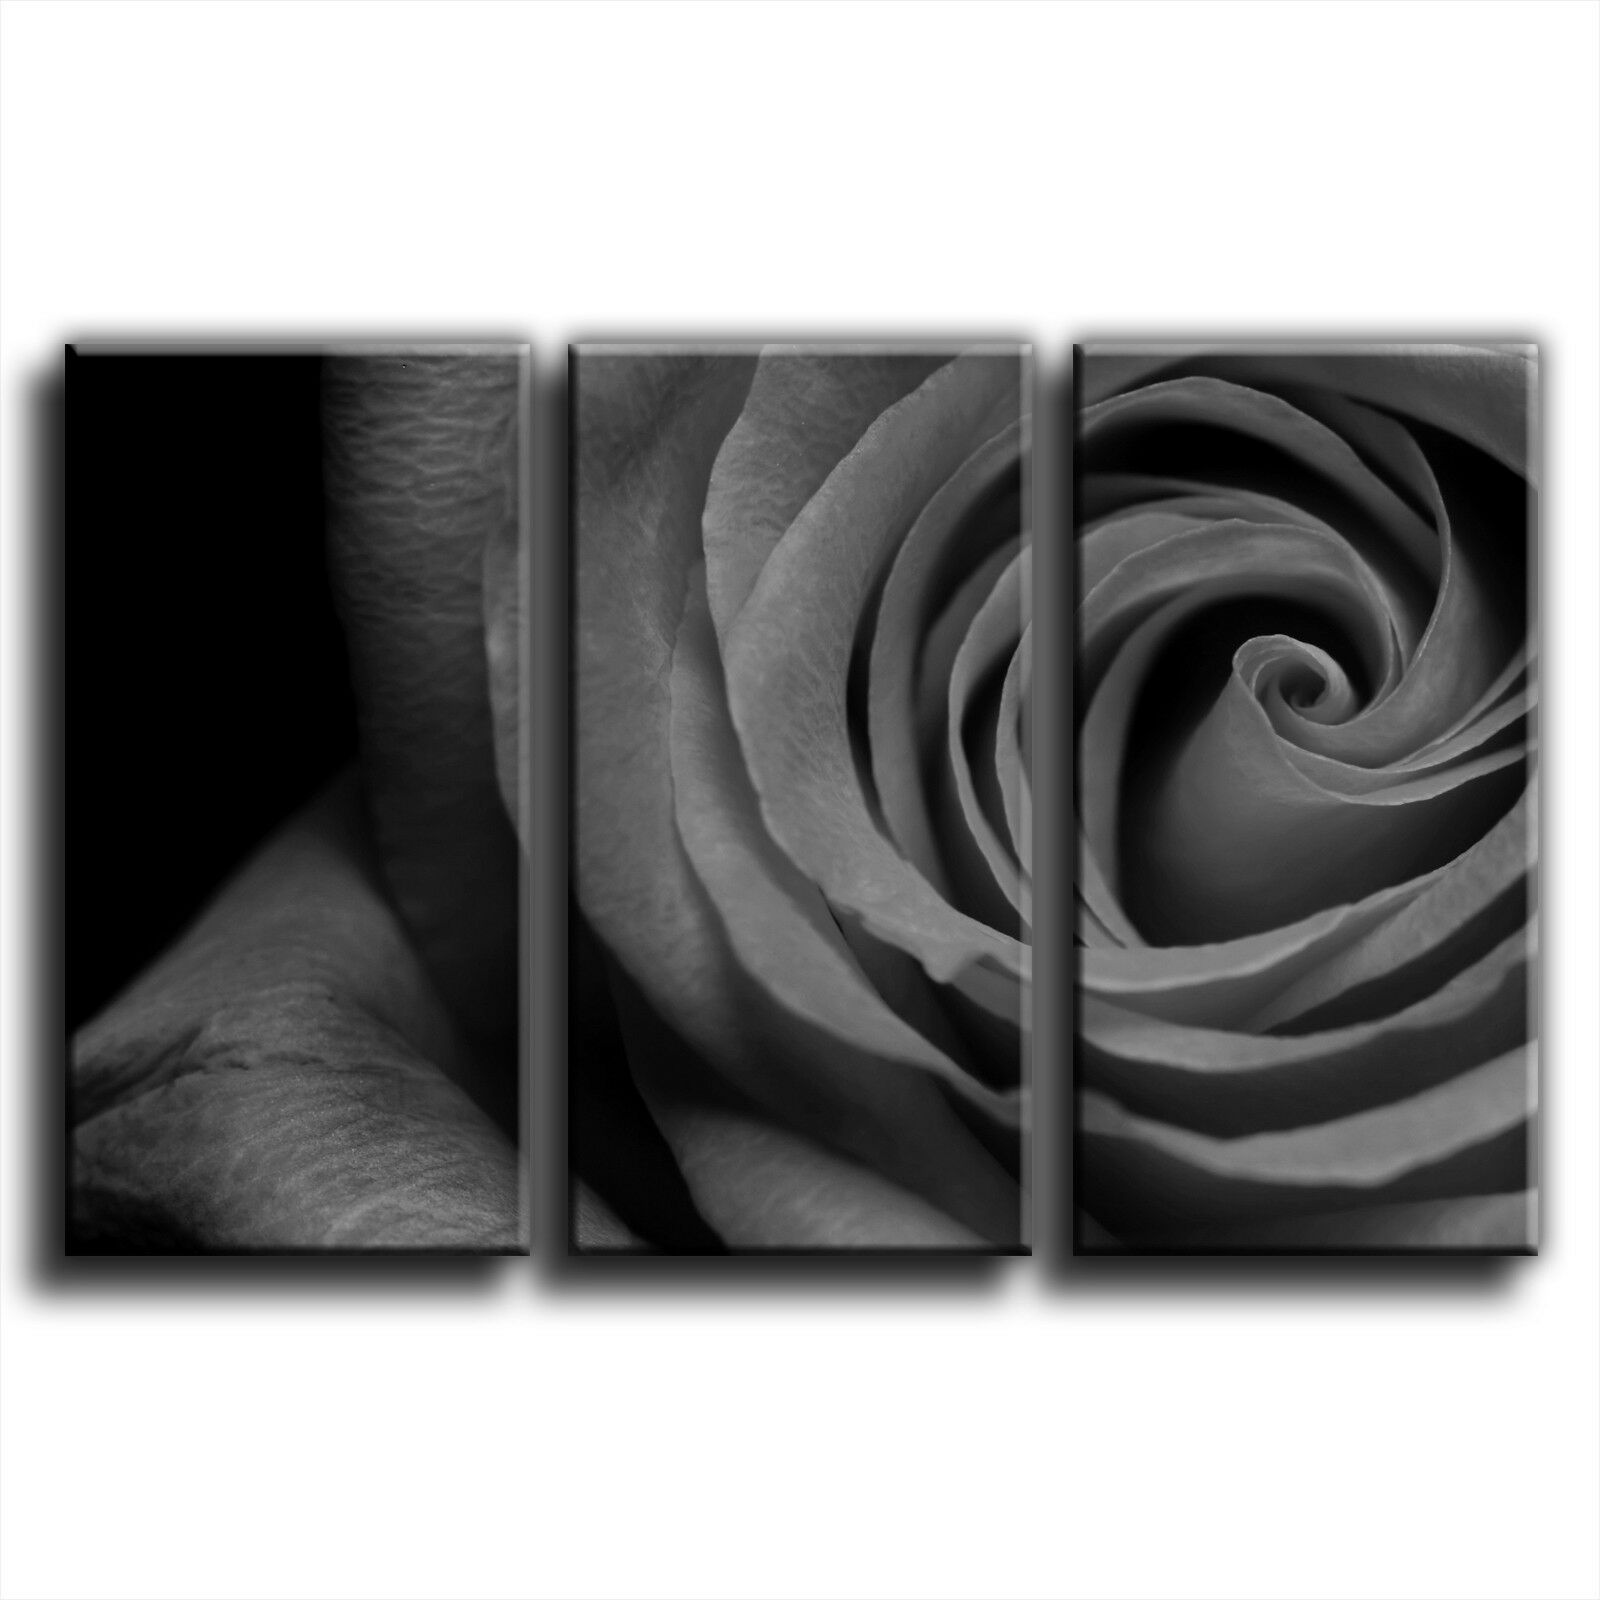 Rosa Floral Floral Floral Treble Canvas Wall Art Picture Print 9 5c6b62